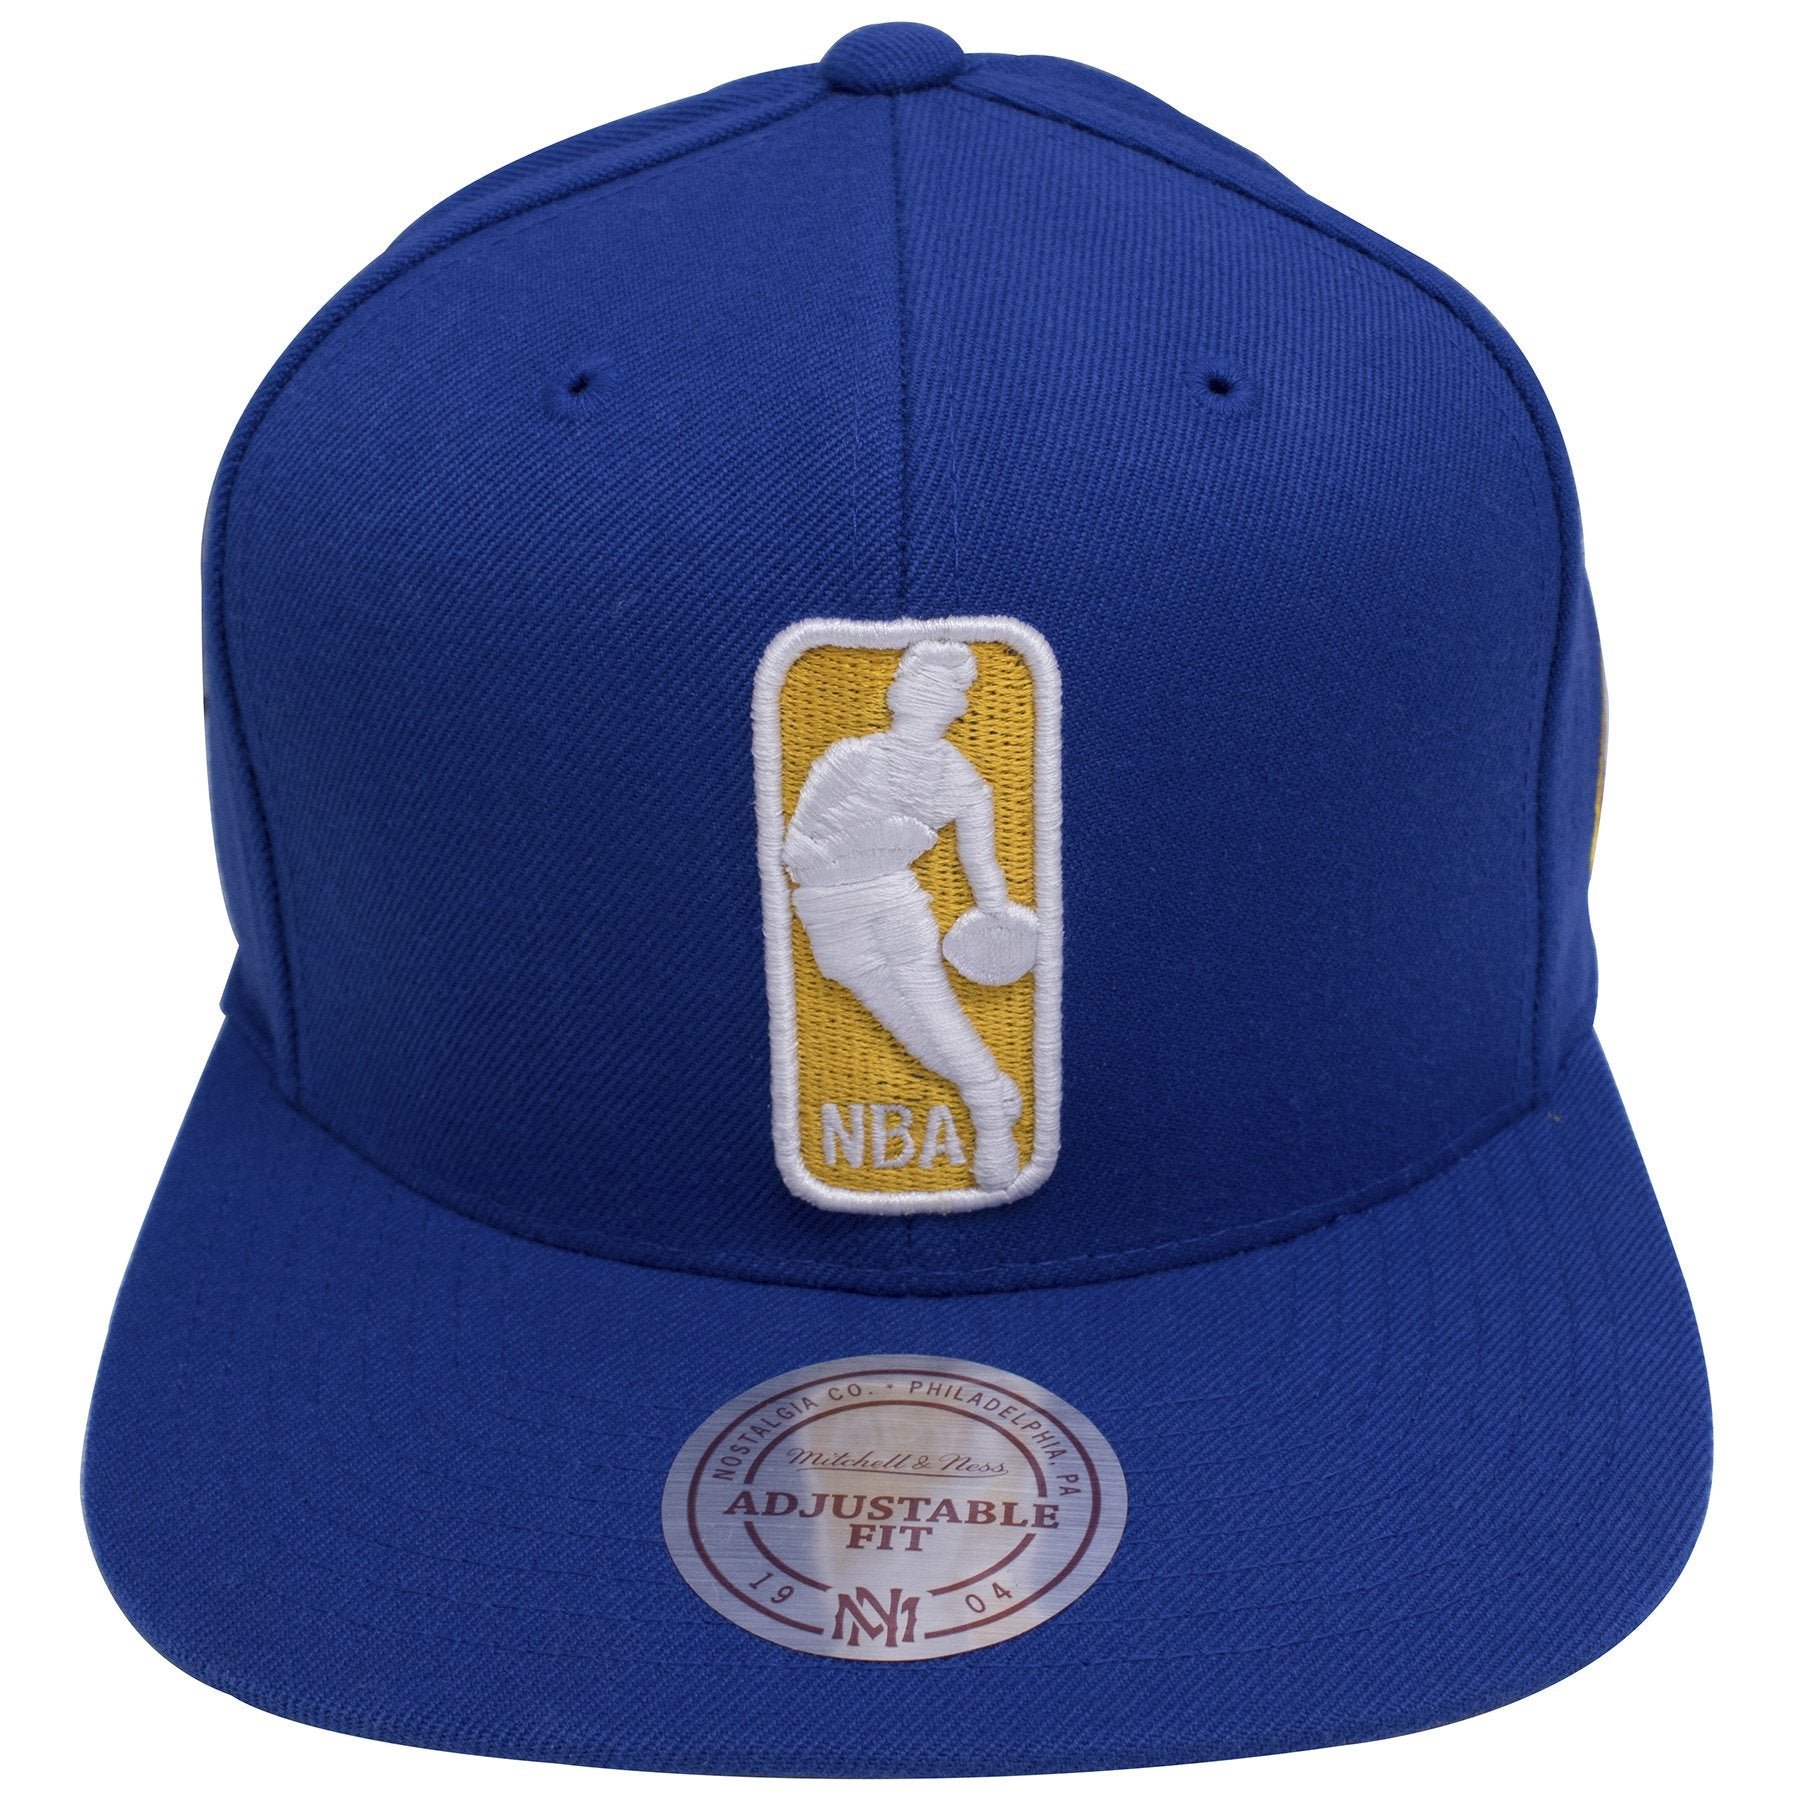 on the front of the Golden State Warriors NBA logo team colorway snapback  hat is the c2357c4f0